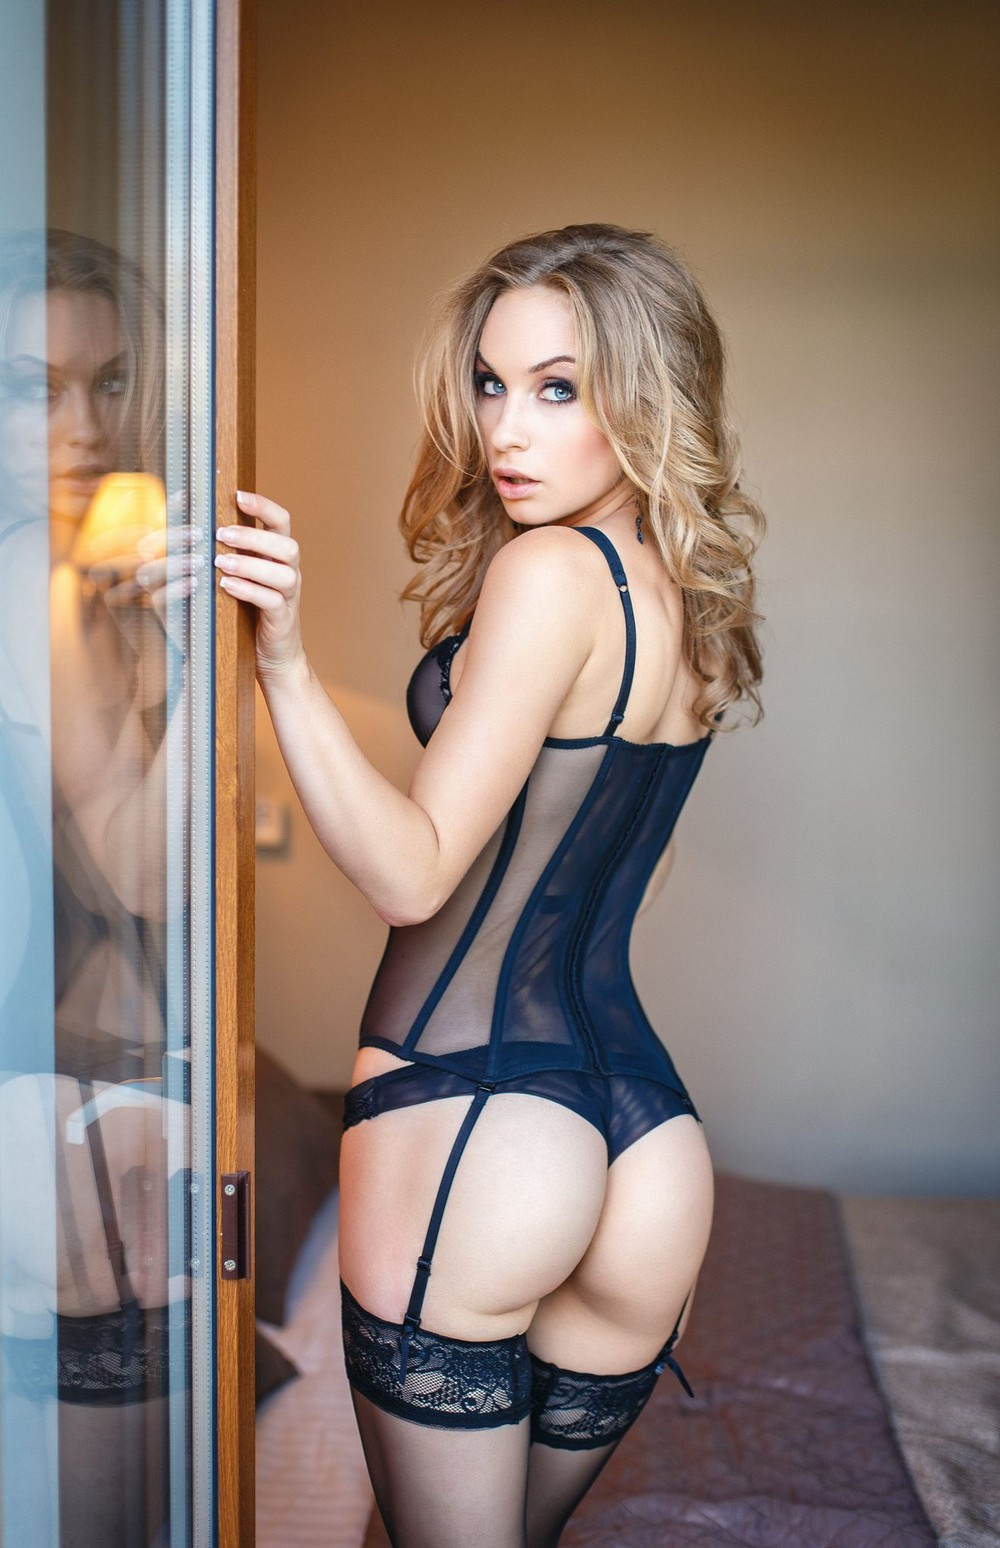 Hot Girls In Sexy Lingerie (47 Photos)